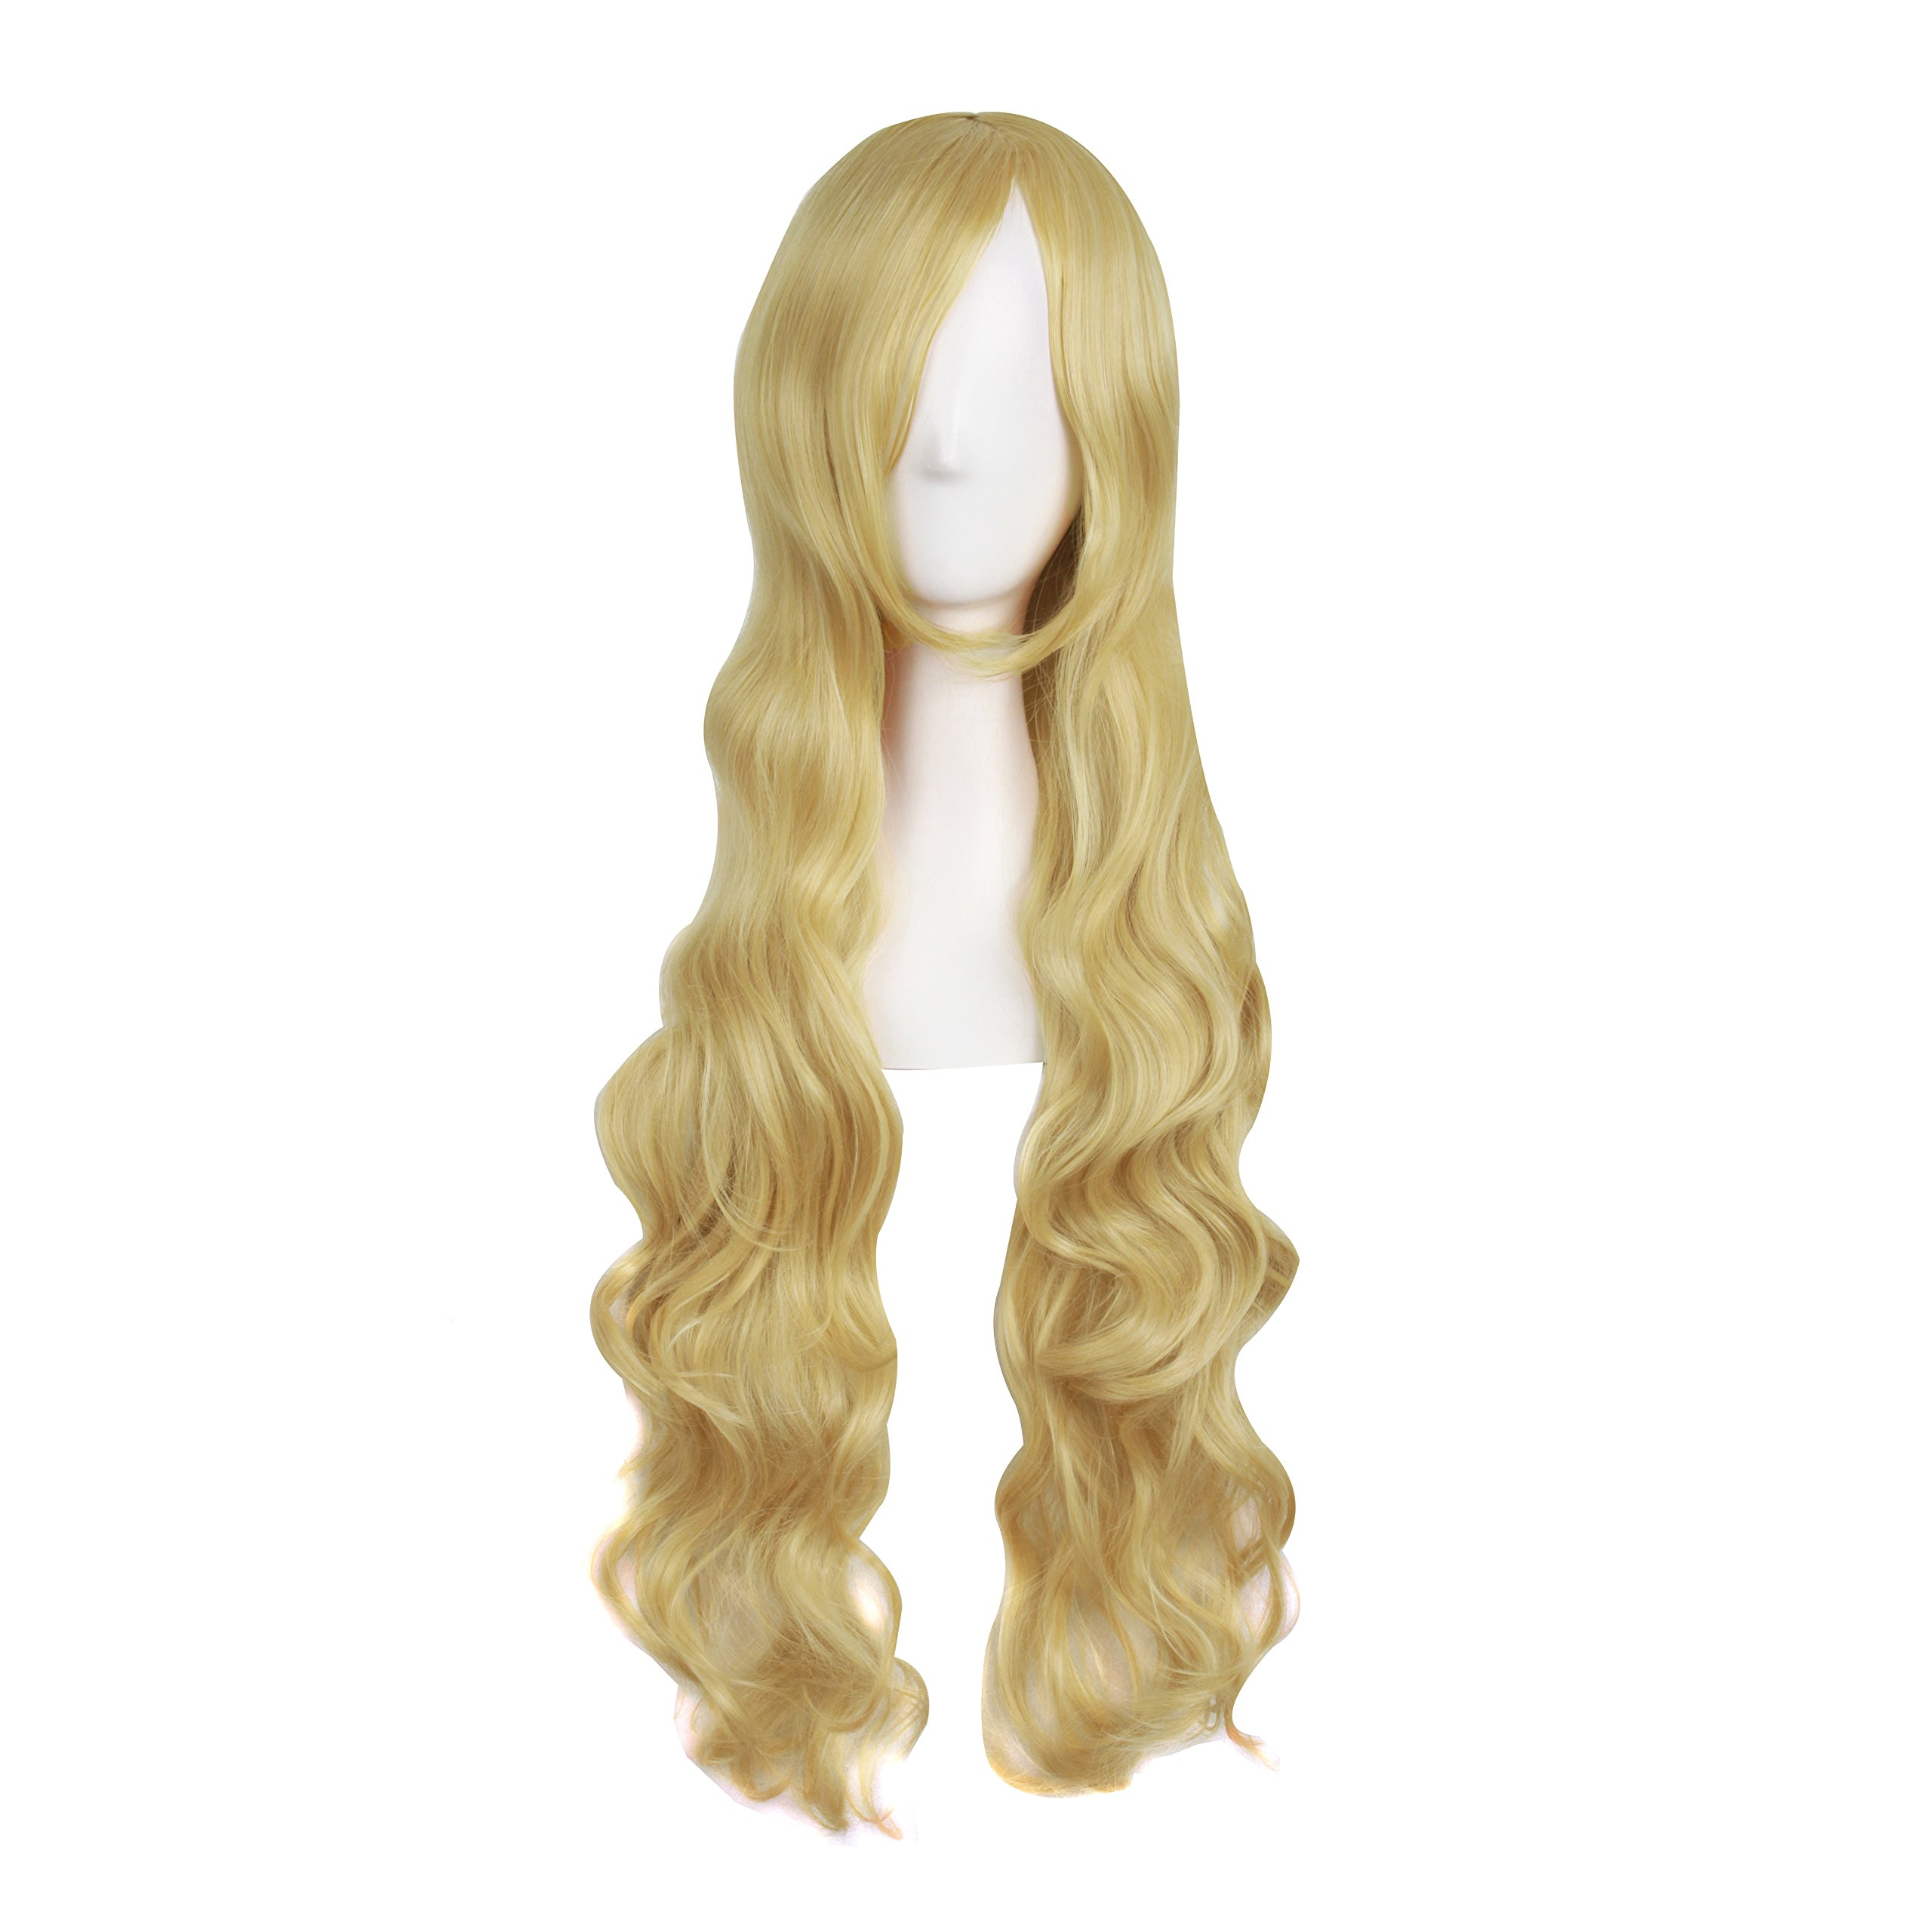 amazoncom mapofbeauty 32quot 80cm long hair spiral curly